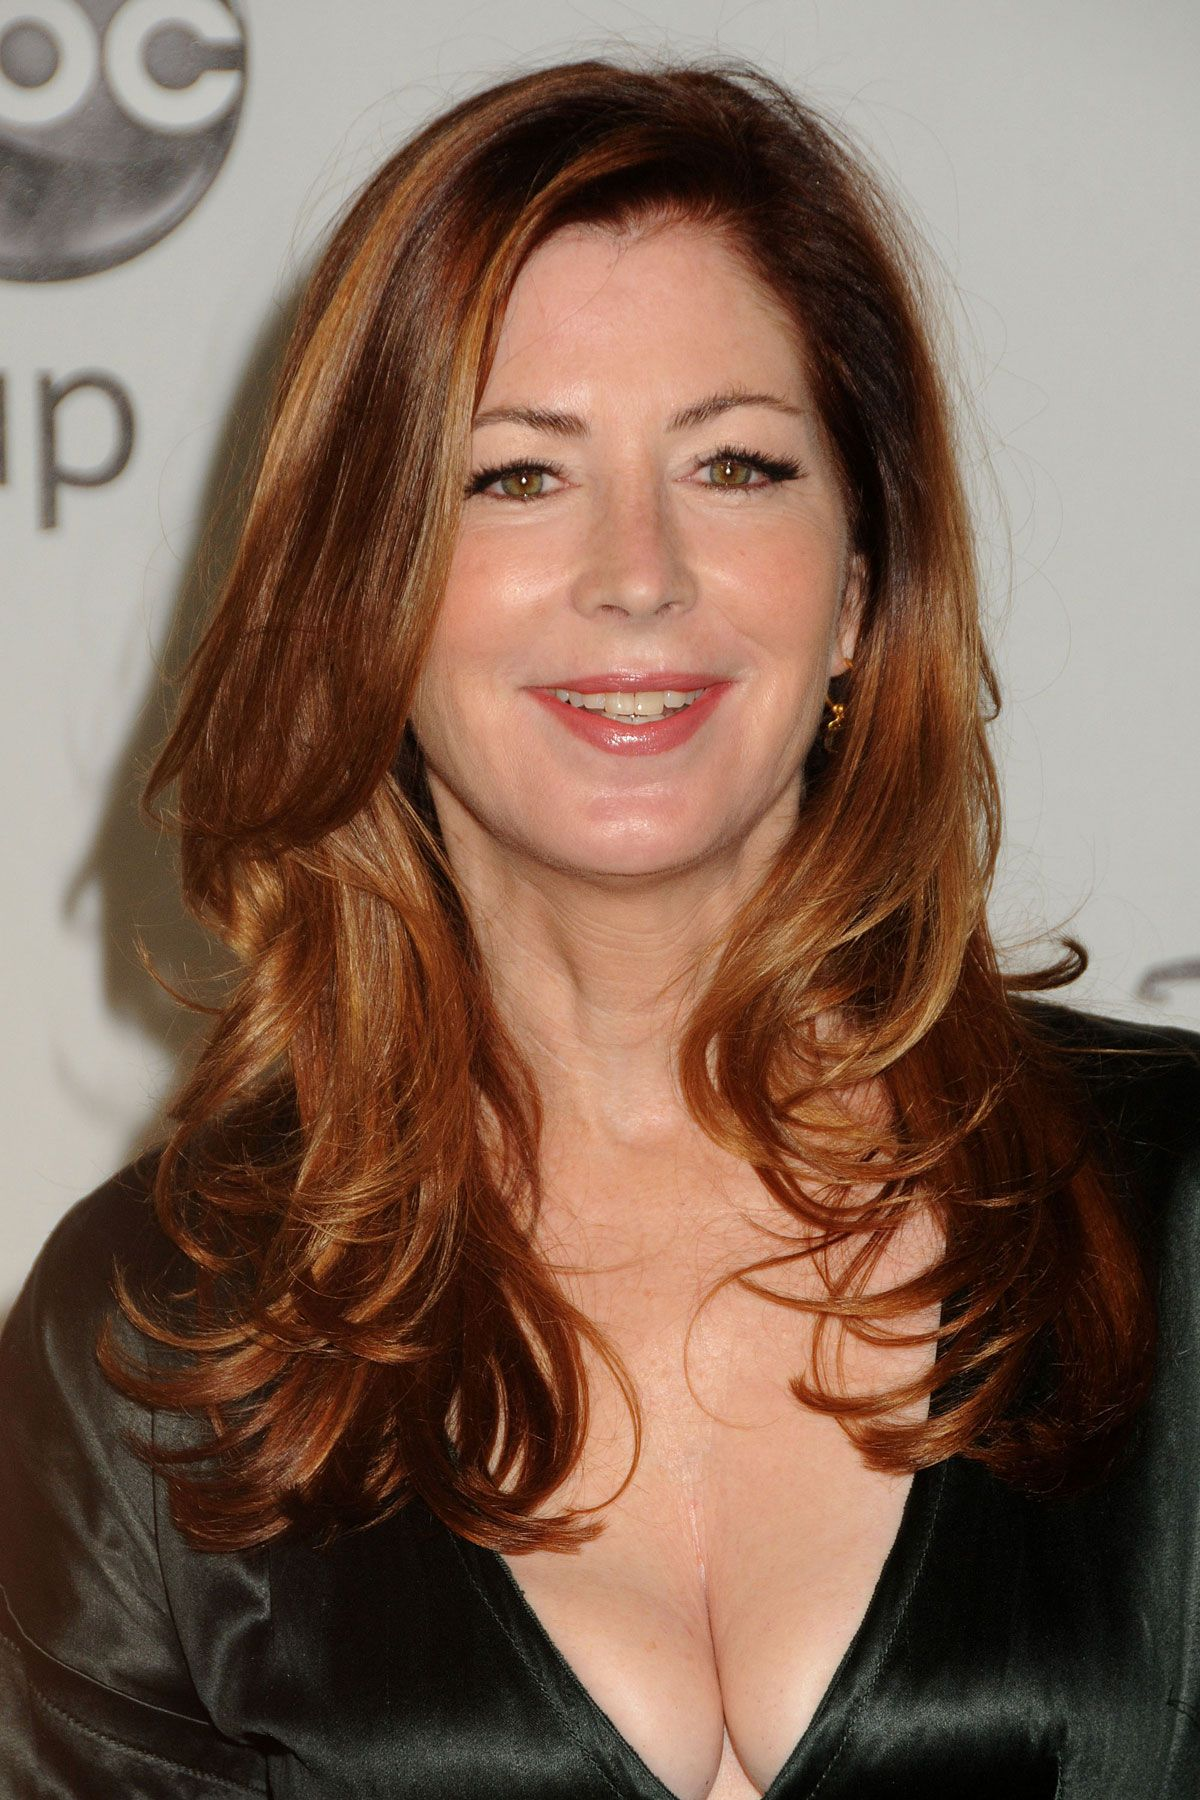 ICloud Dana Delany naked (53 foto and video), Tits, Sideboobs, Twitter, braless 2018